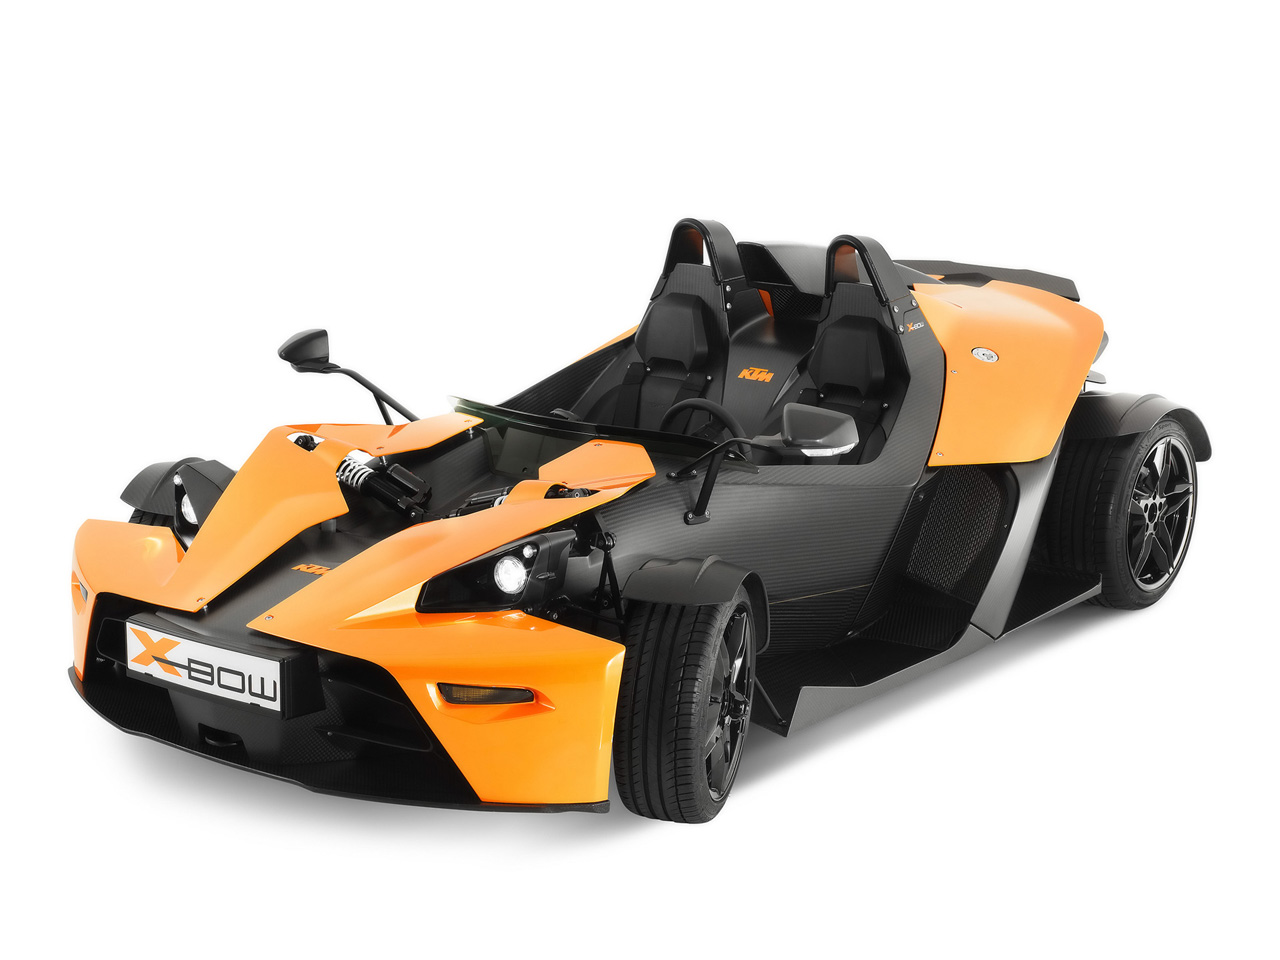 KTM Offers 134 mph Street Legal Go-Kart Racer